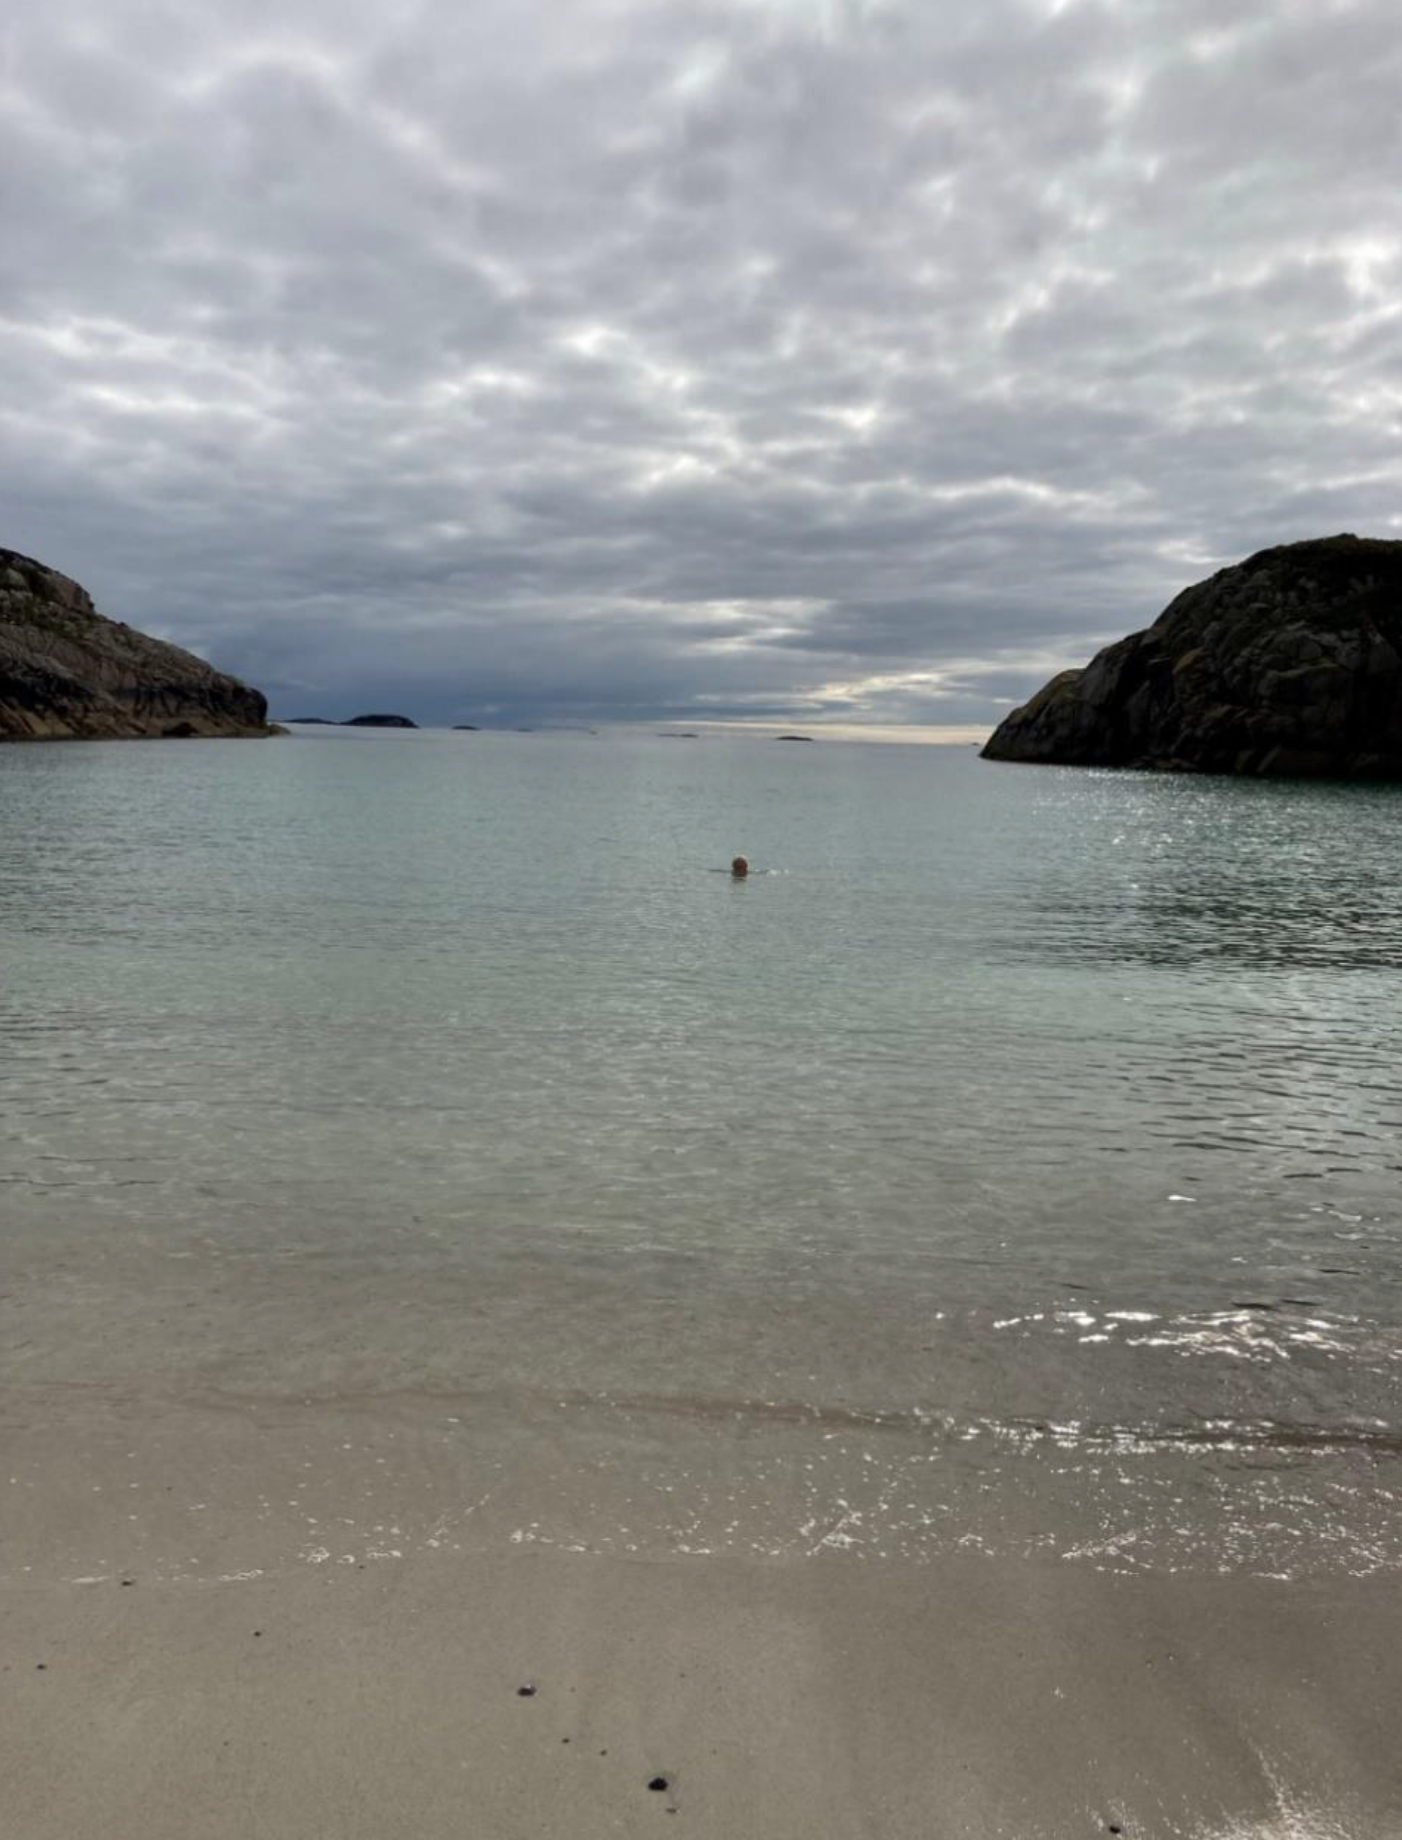 Author swimming in the sea